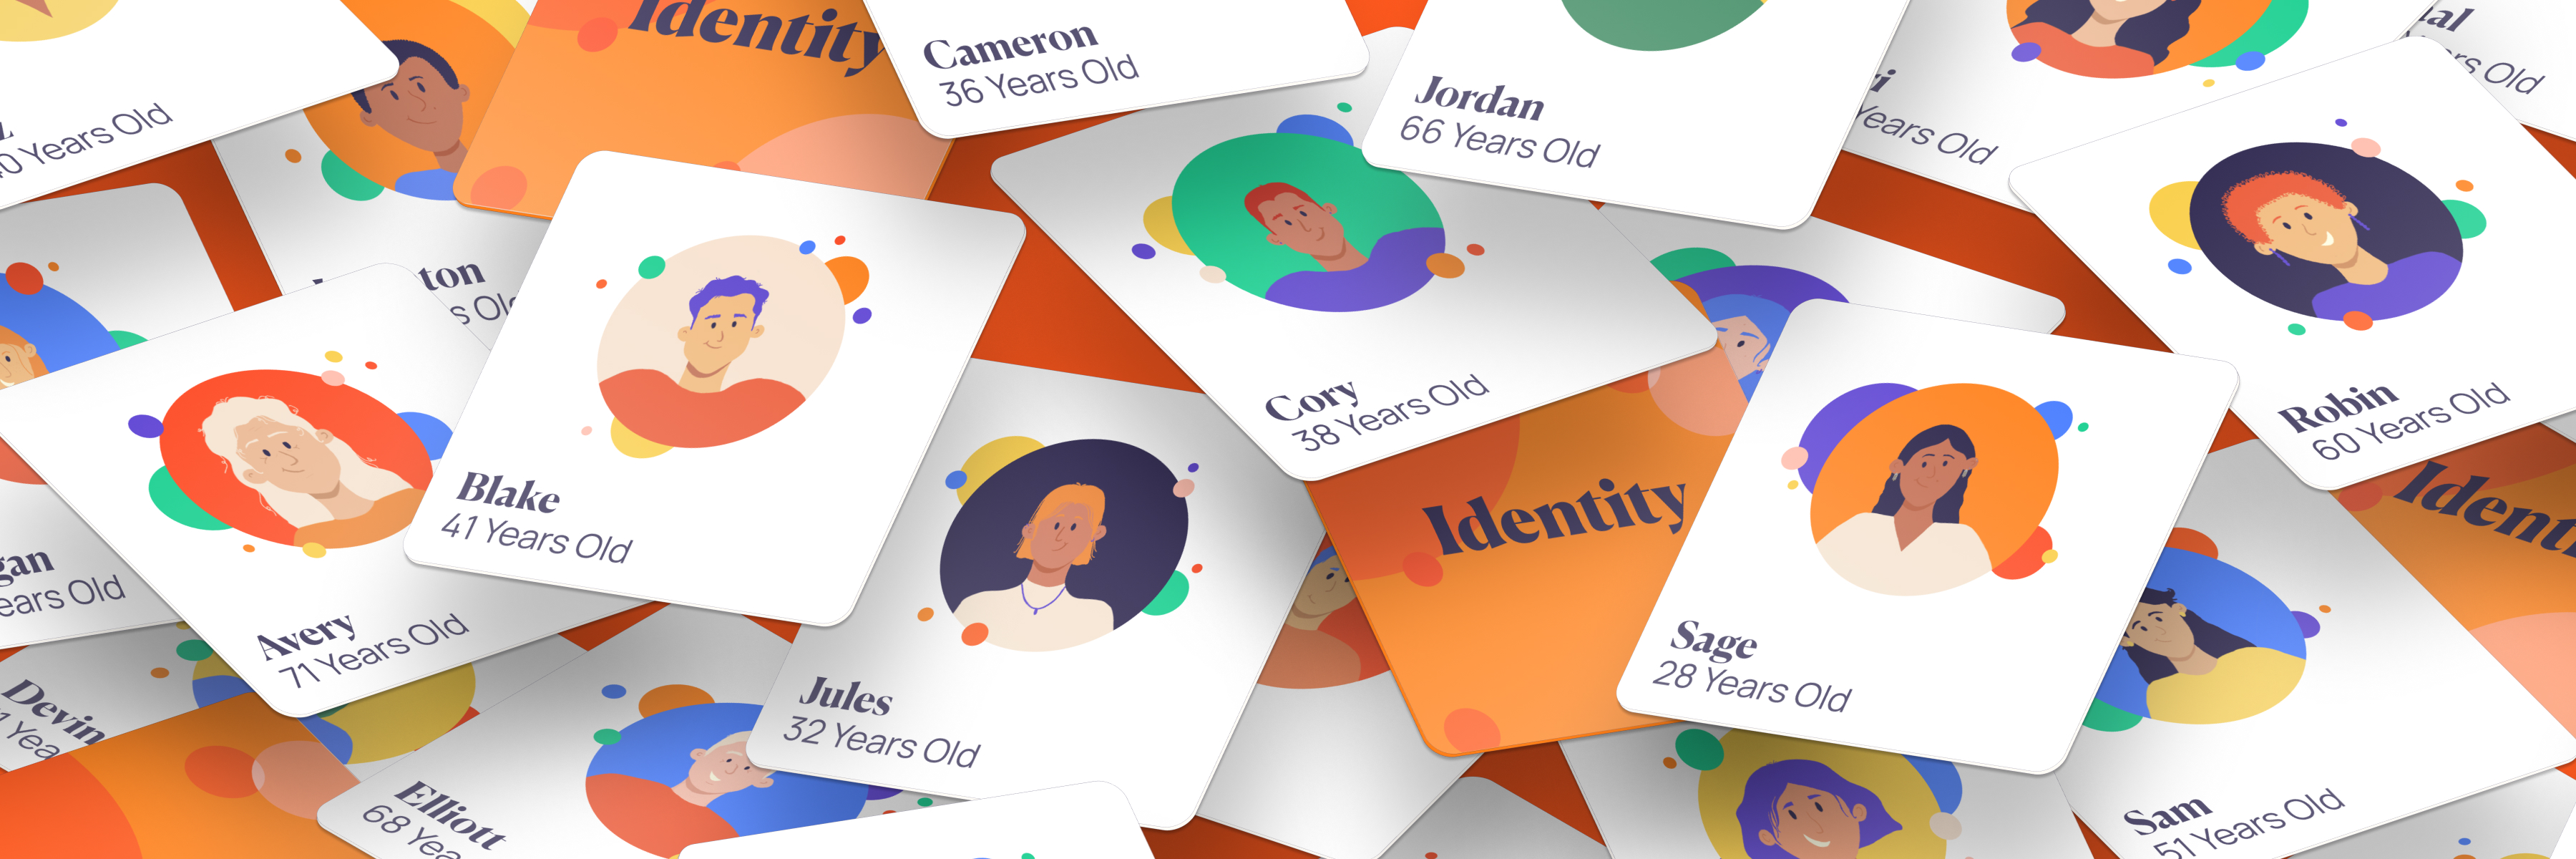 Image of cascading, isometric Identity cards from Imperfect Personas